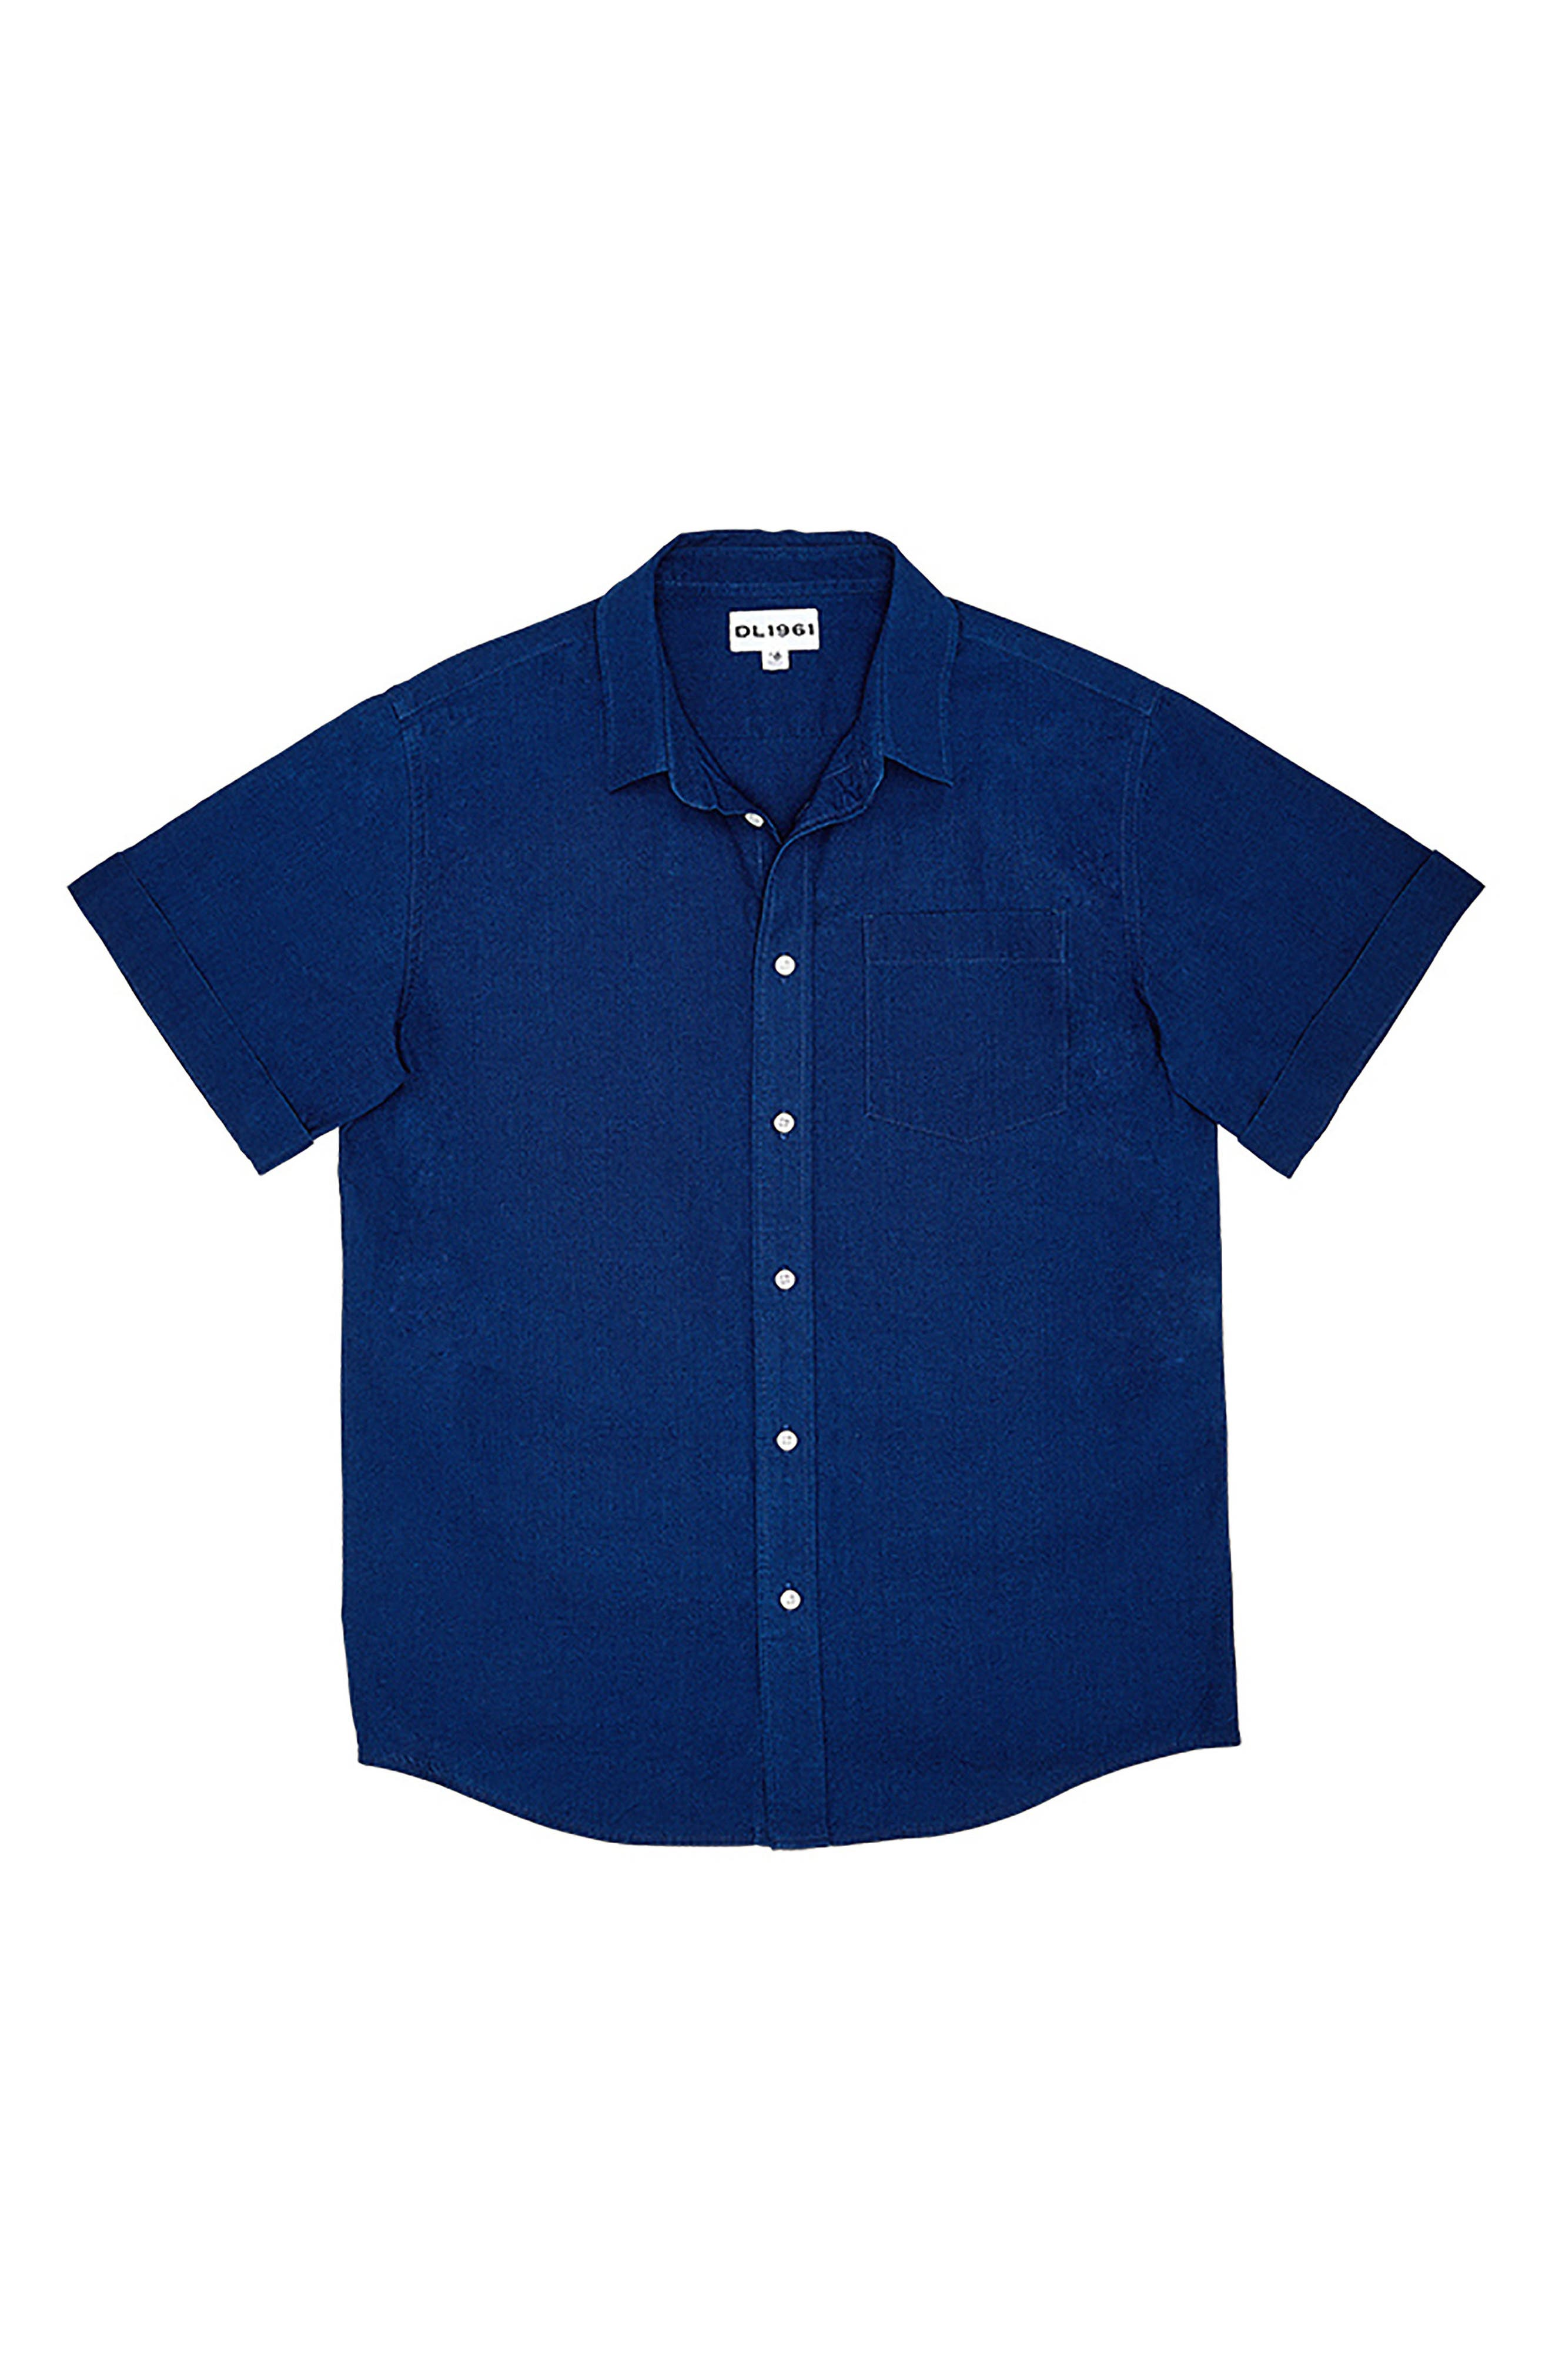 DL 1961 Ash Woven Shirt,                         Main,                         color, Indigo Plaid